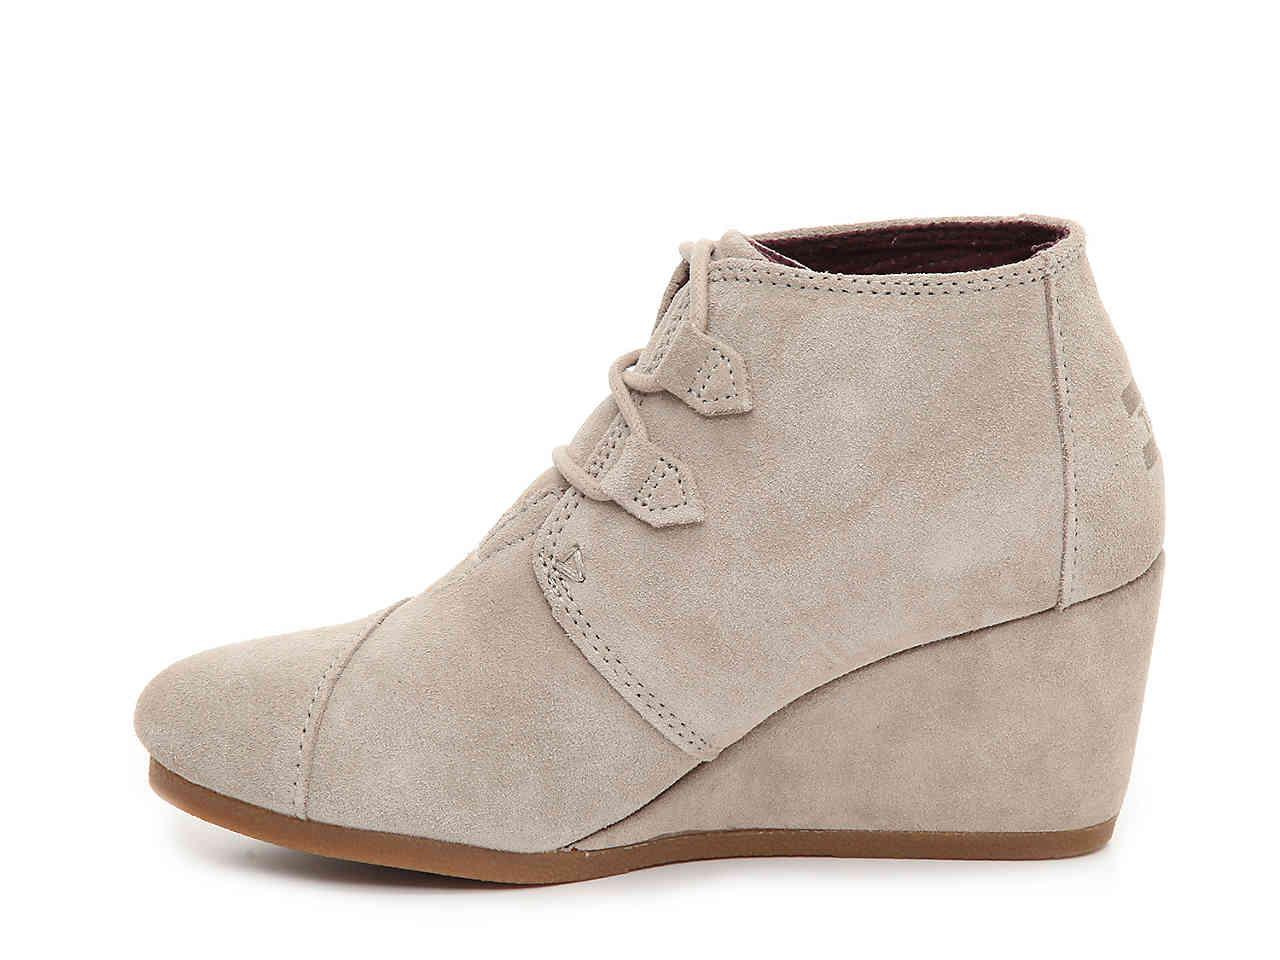 485a9432af0 TOMS - Multicolor Kala Wedge Bootie - Lyst. View fullscreen